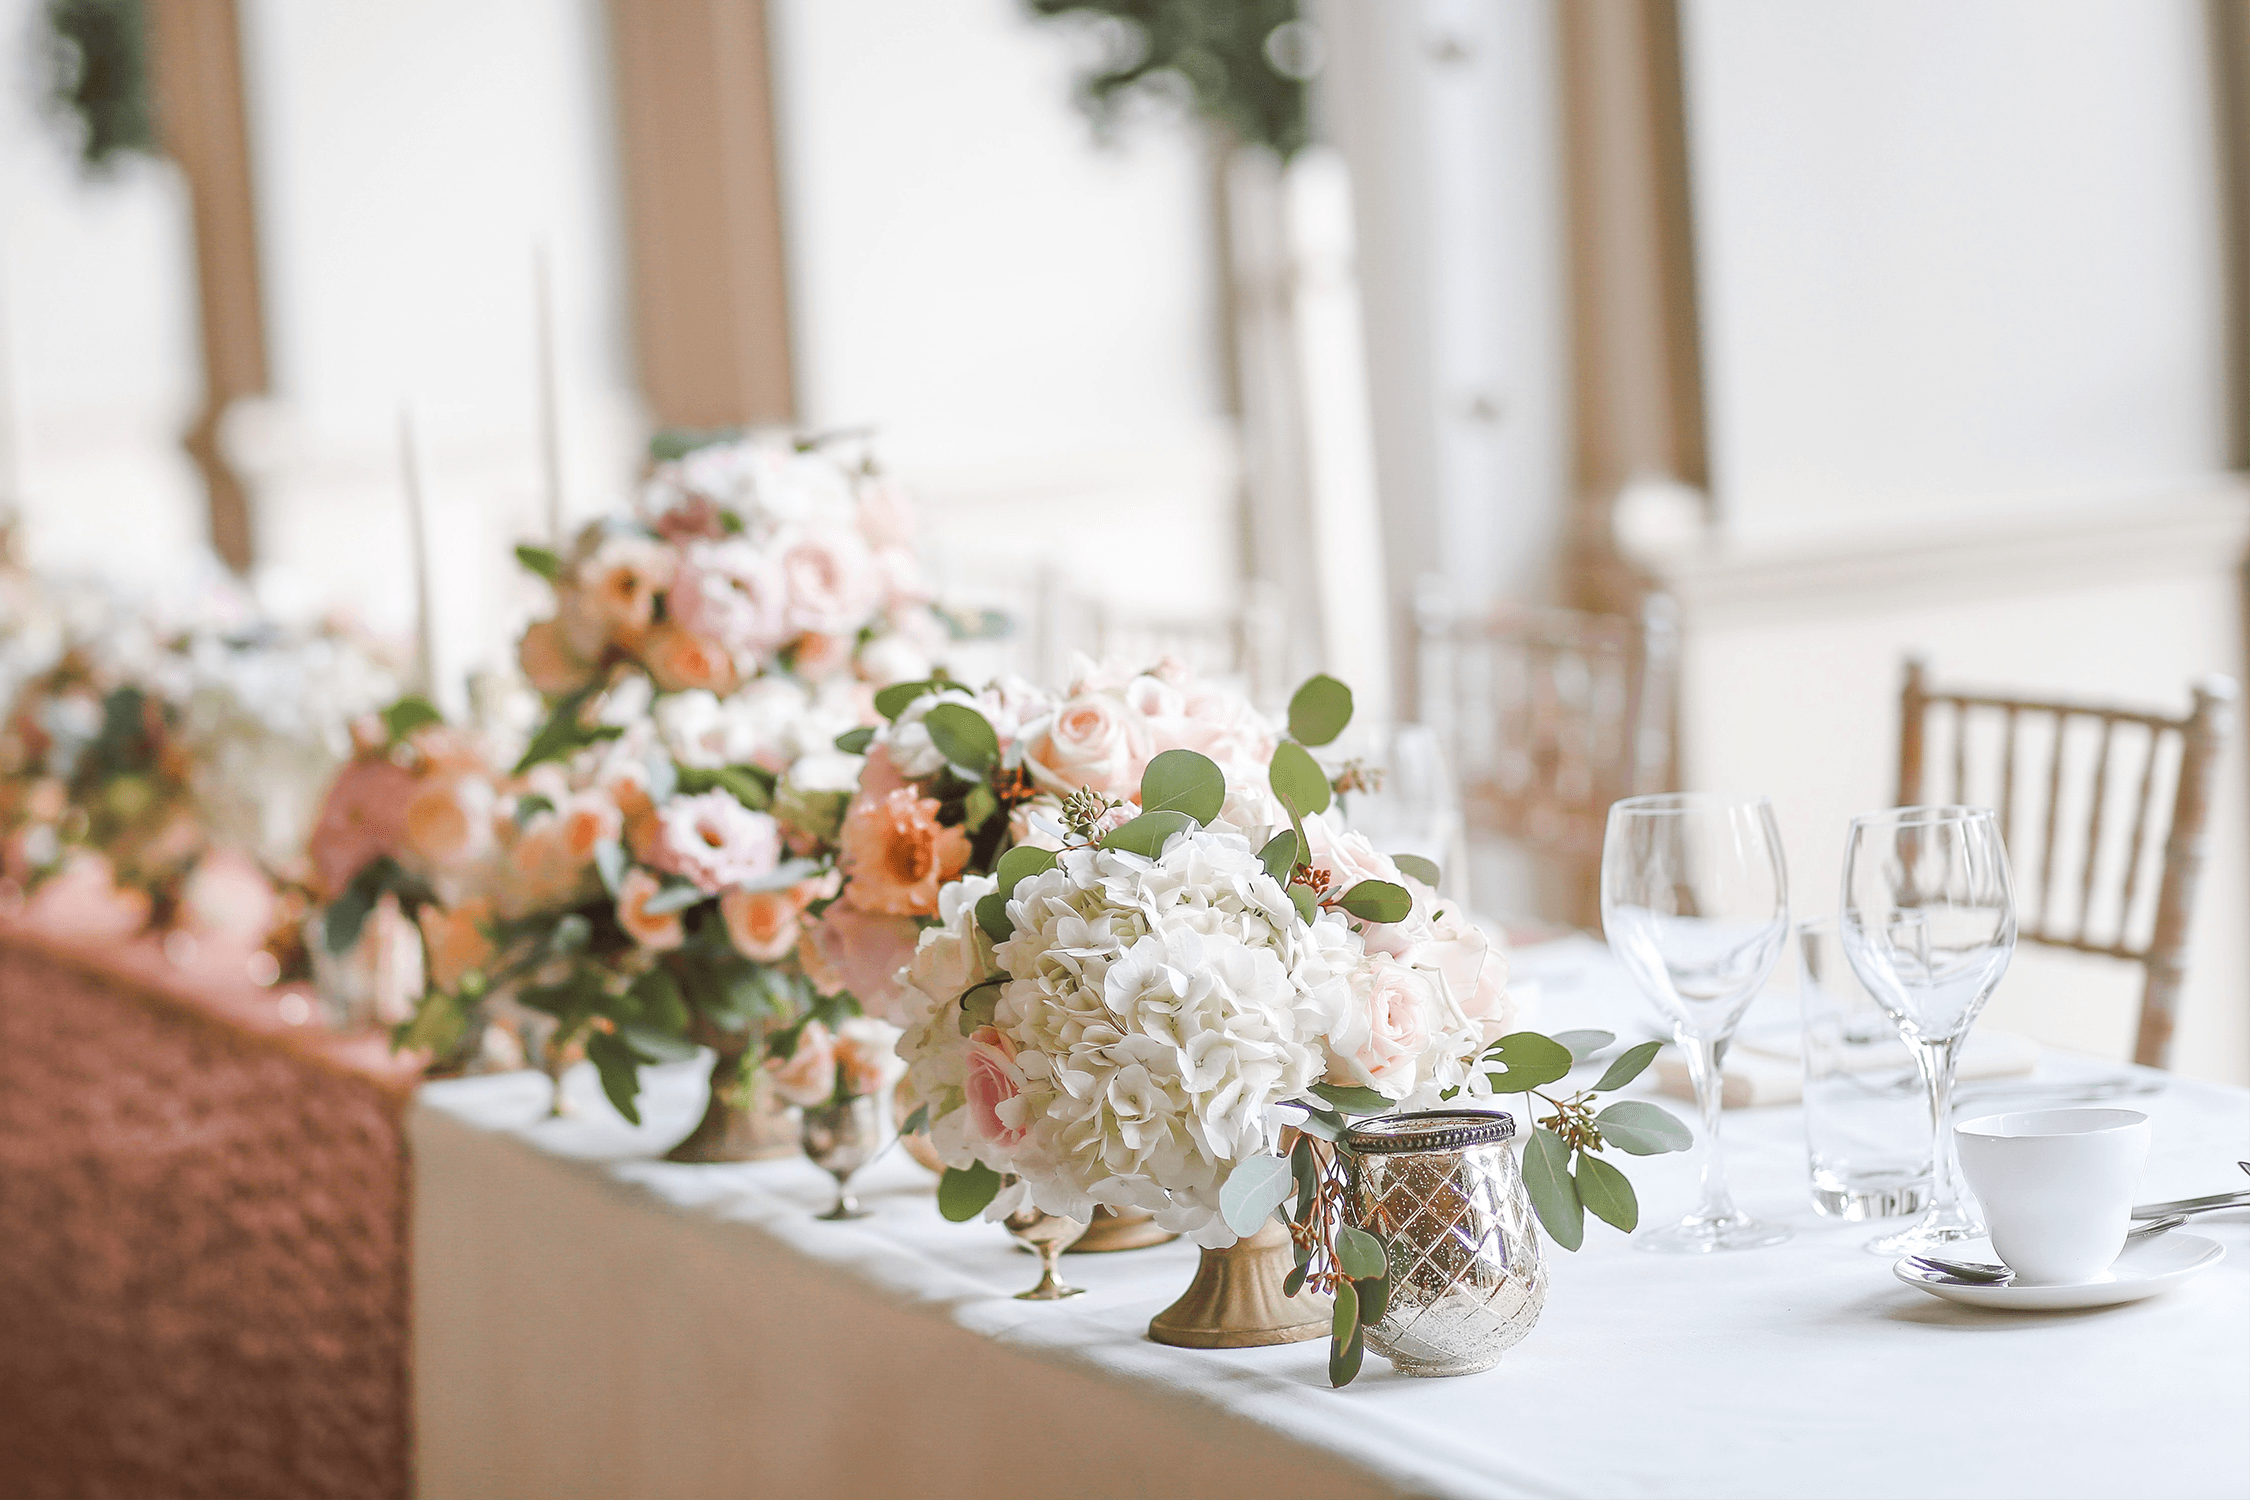 The head table at a wedding with white and pink flowers